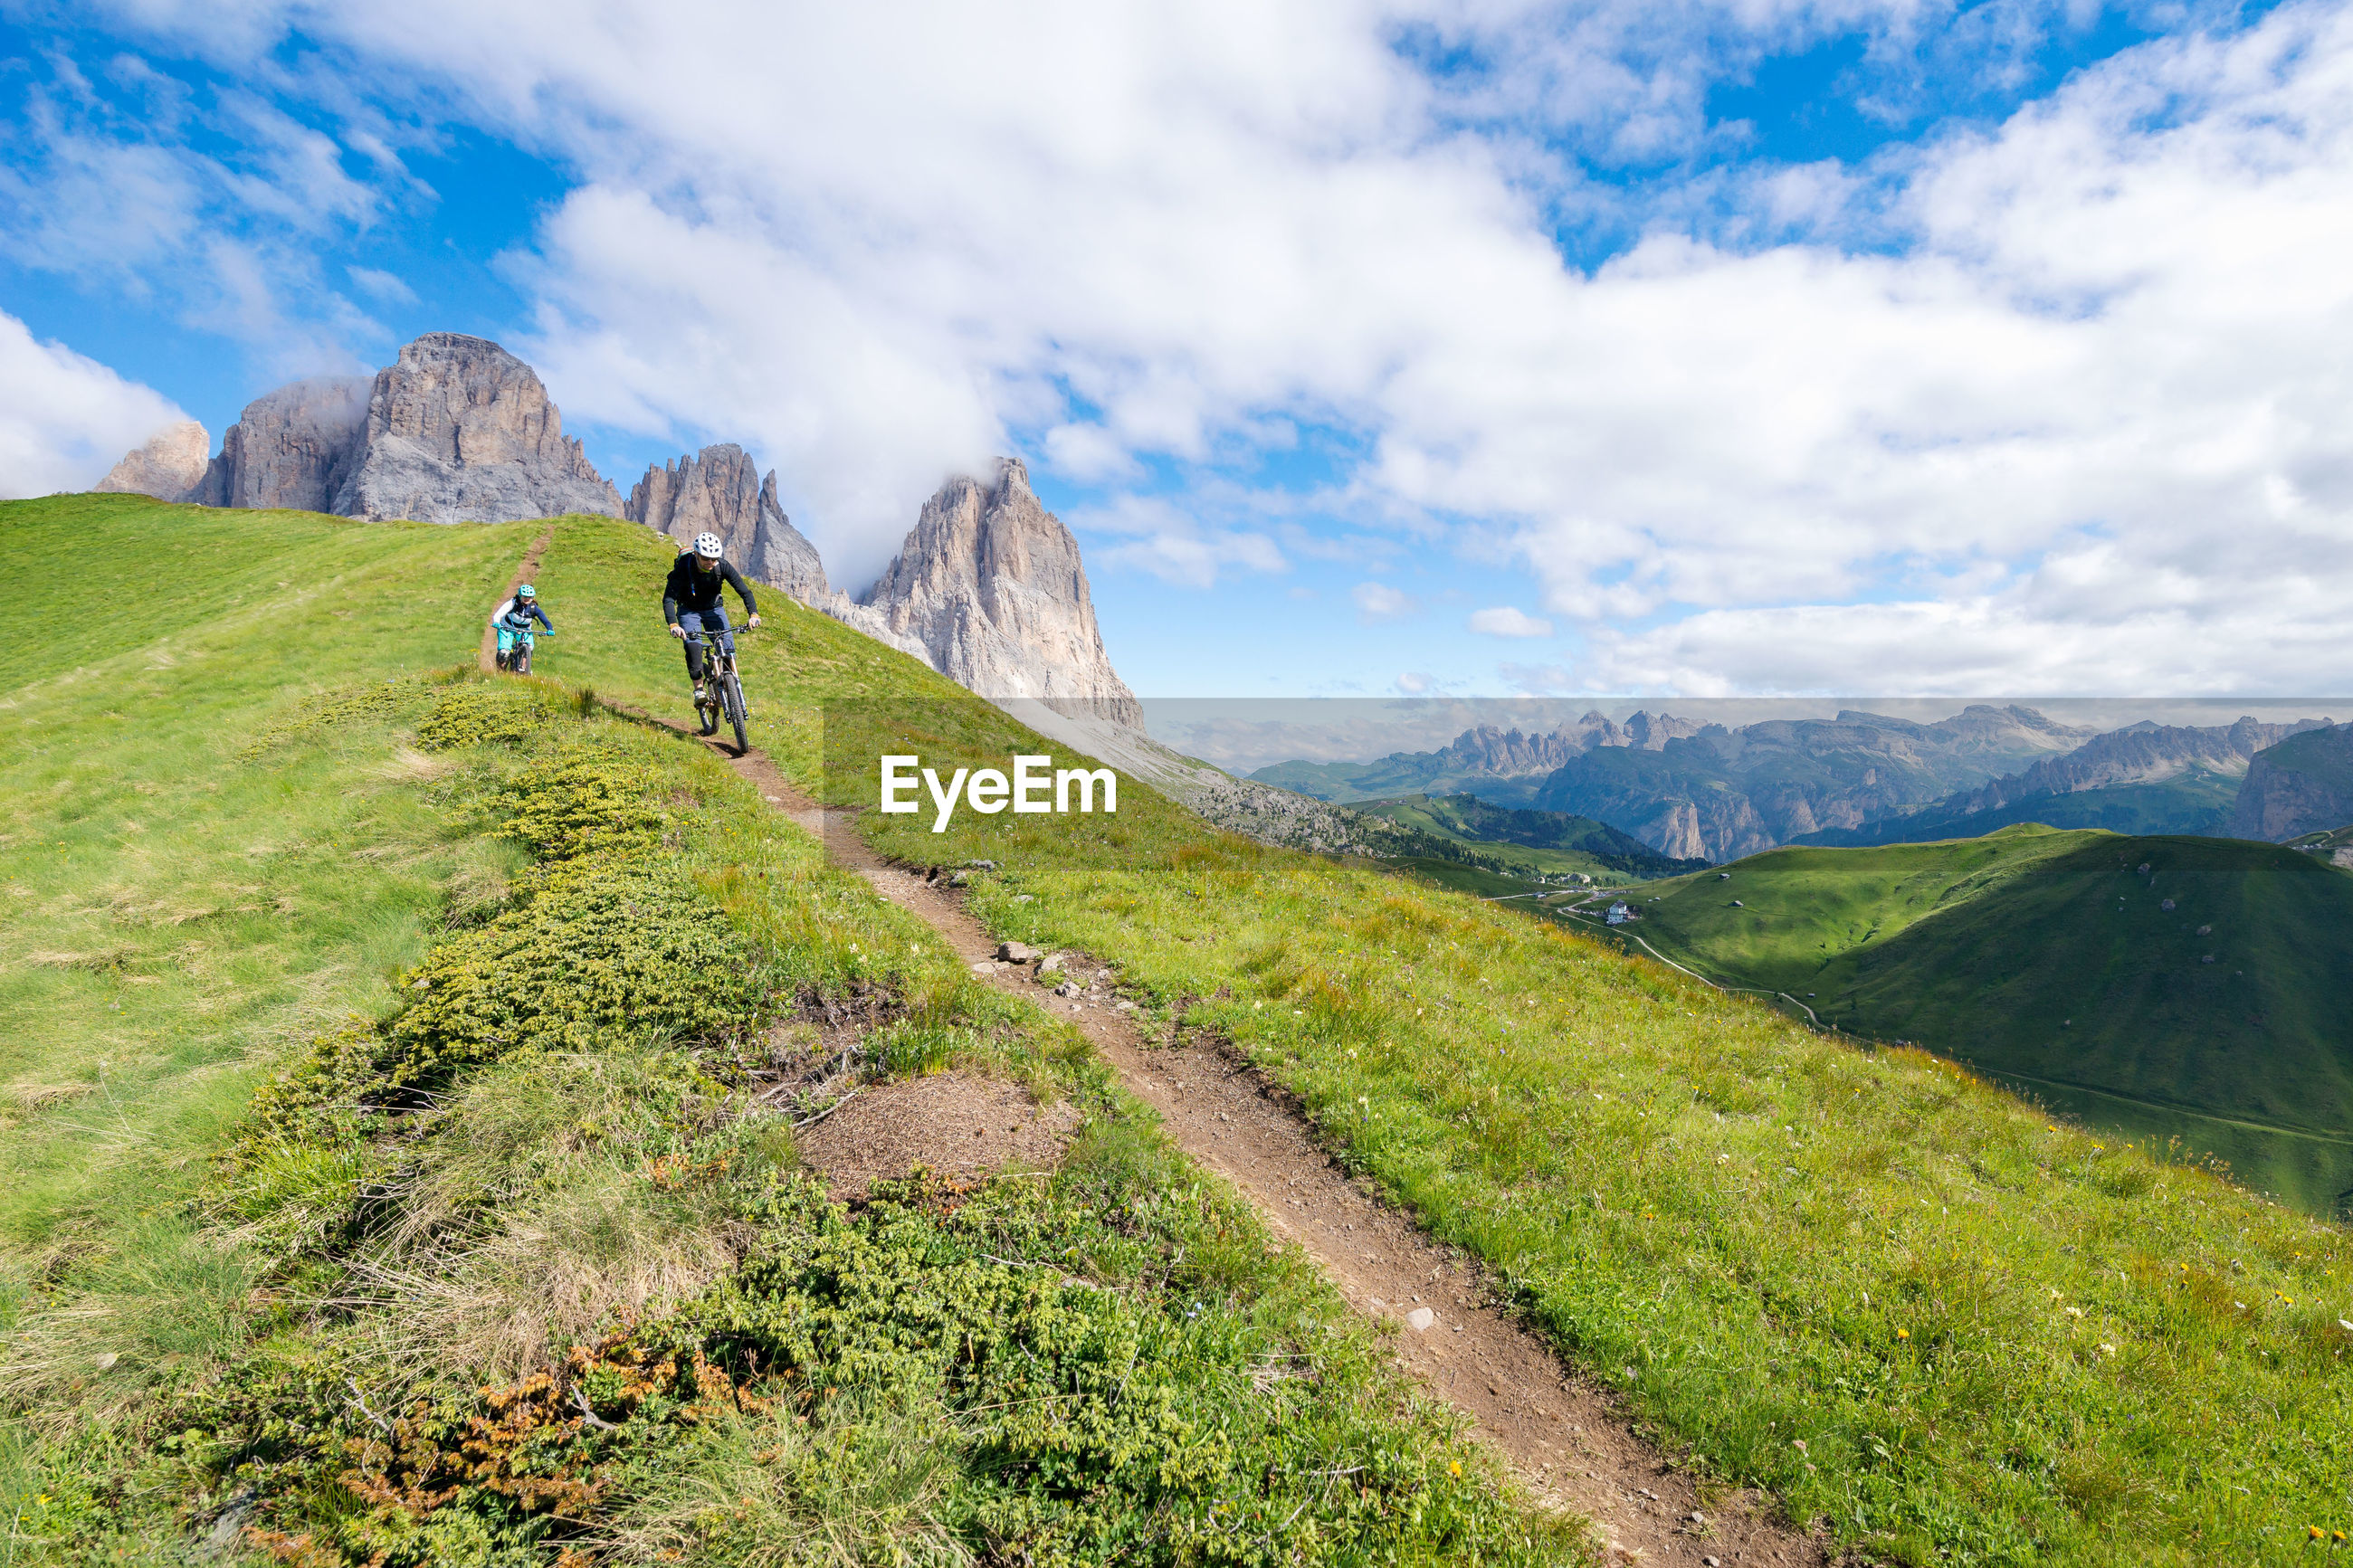 Low angle view of people riding bicycles on mountain